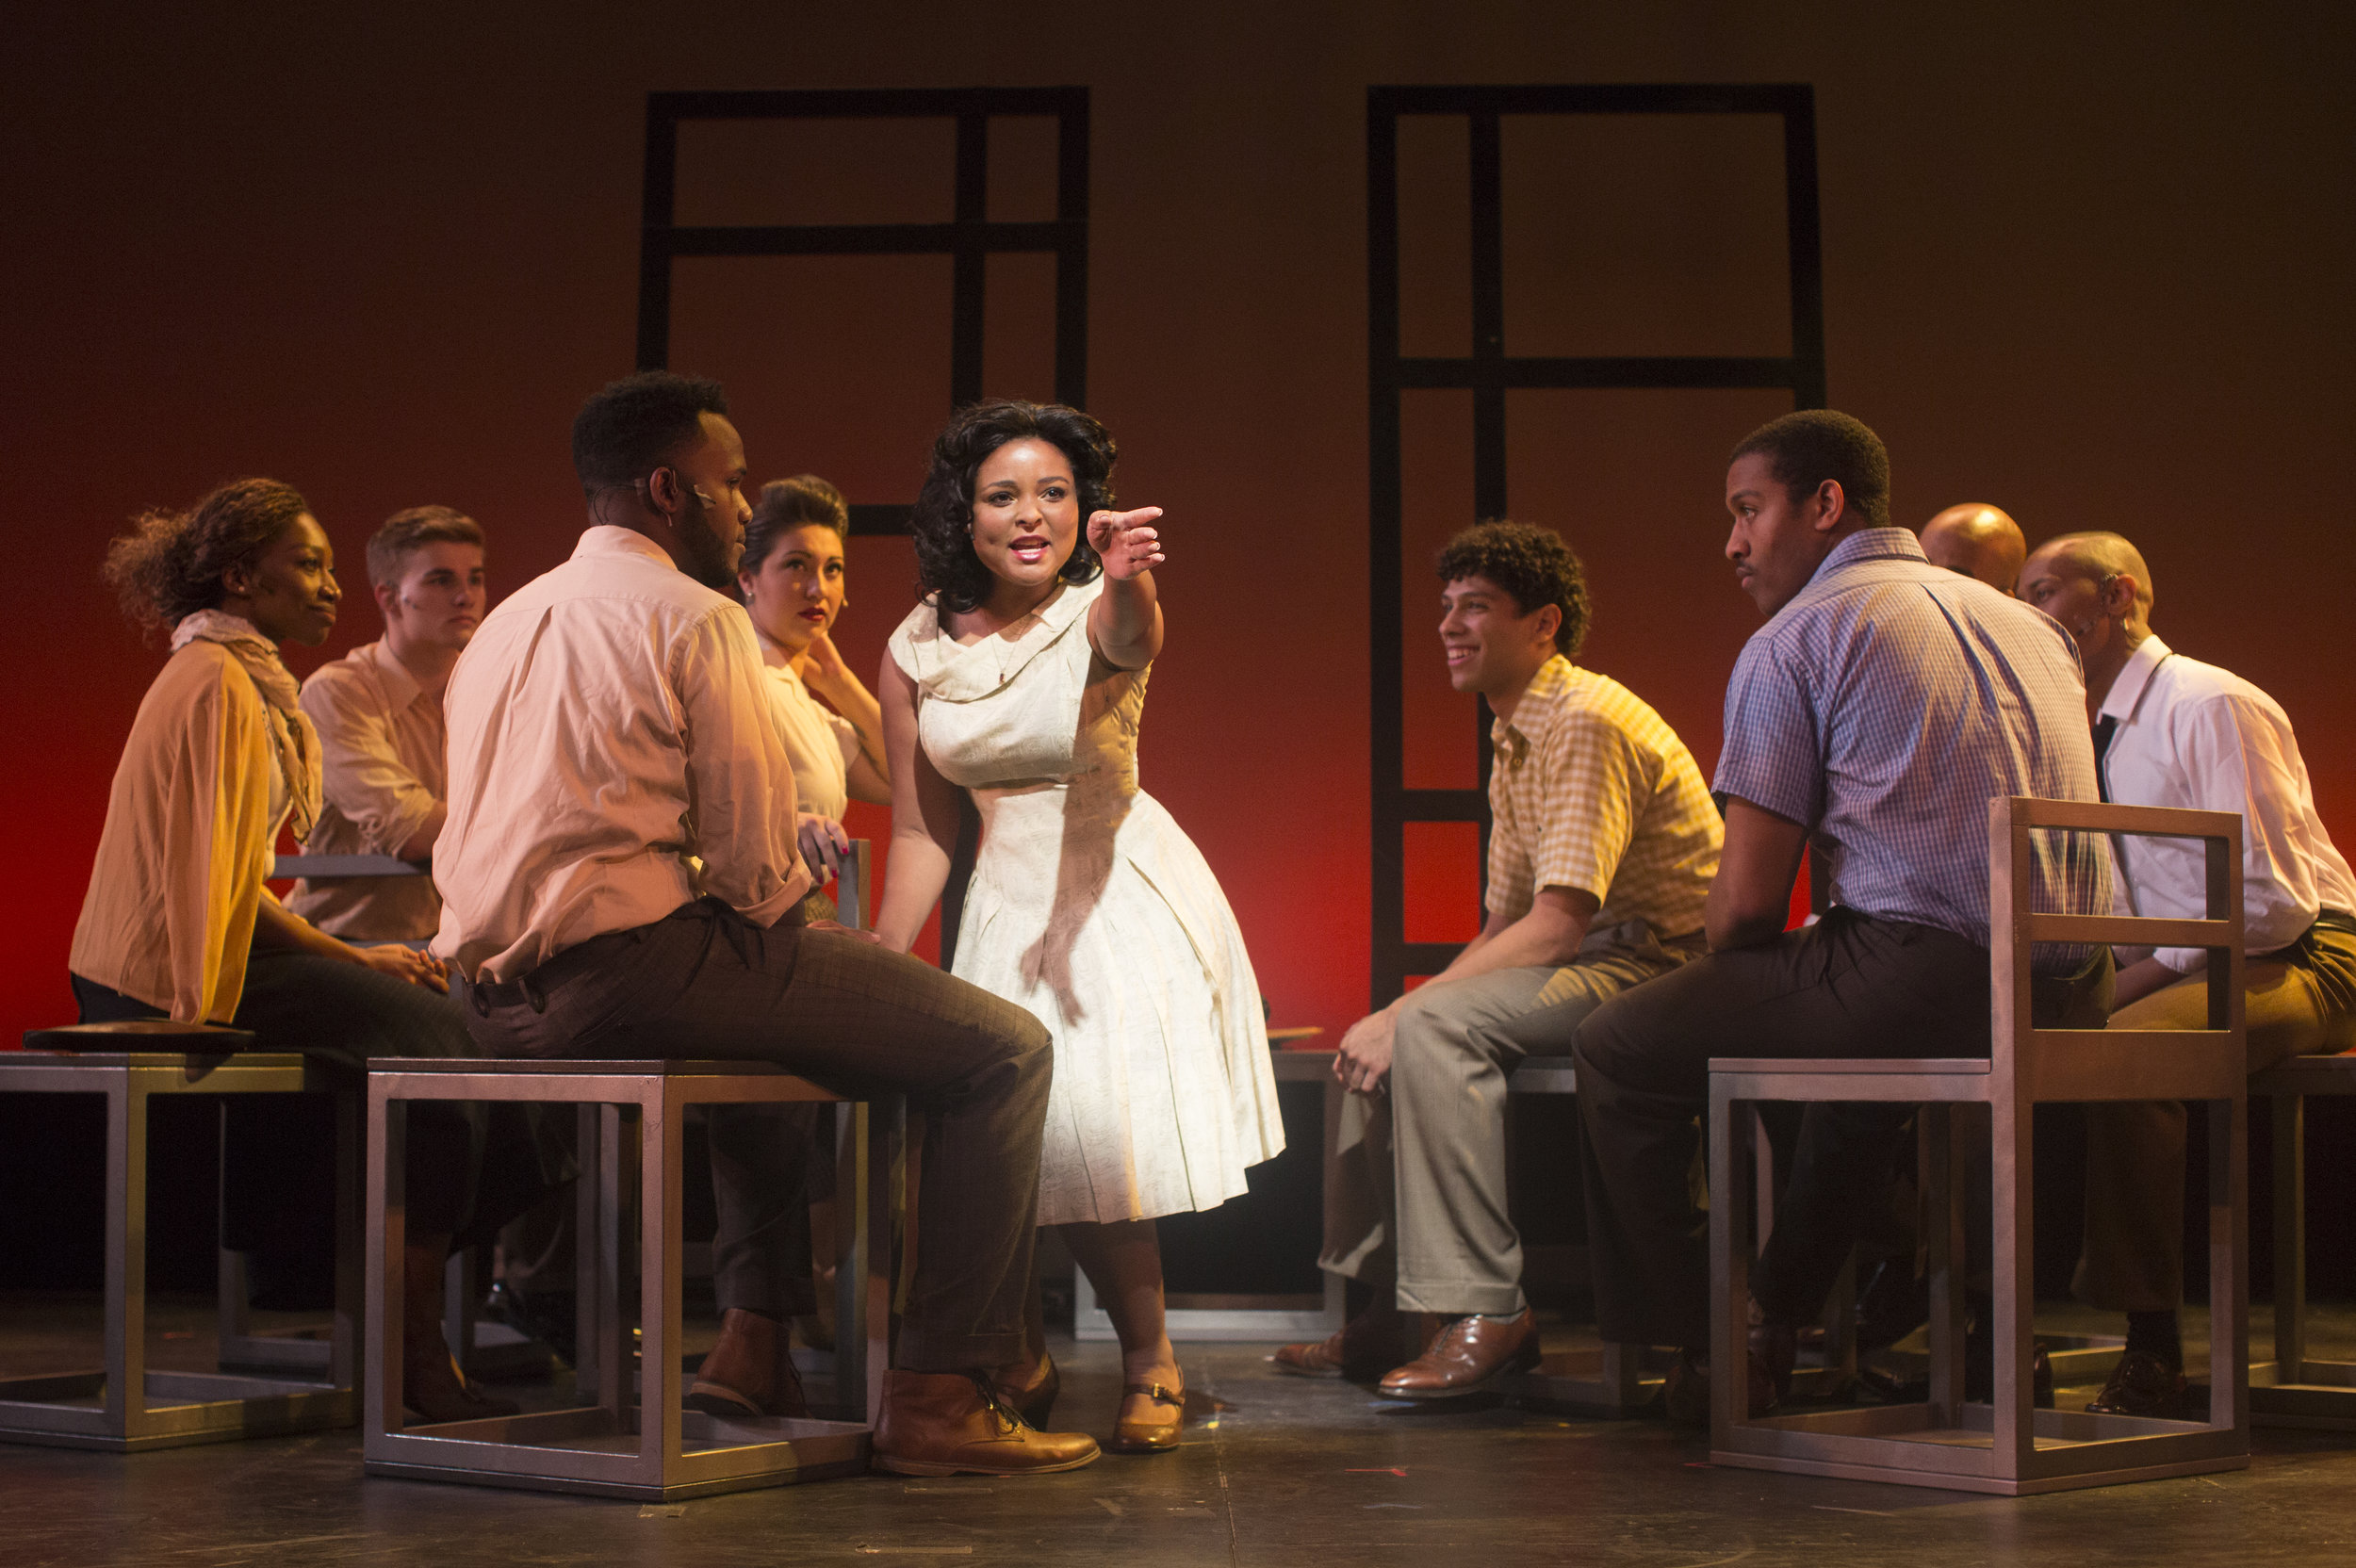 Brynn Williams and Cast of FREEDOM RIDERS at NYMF 2017 - photo by Mia Winston.jpg